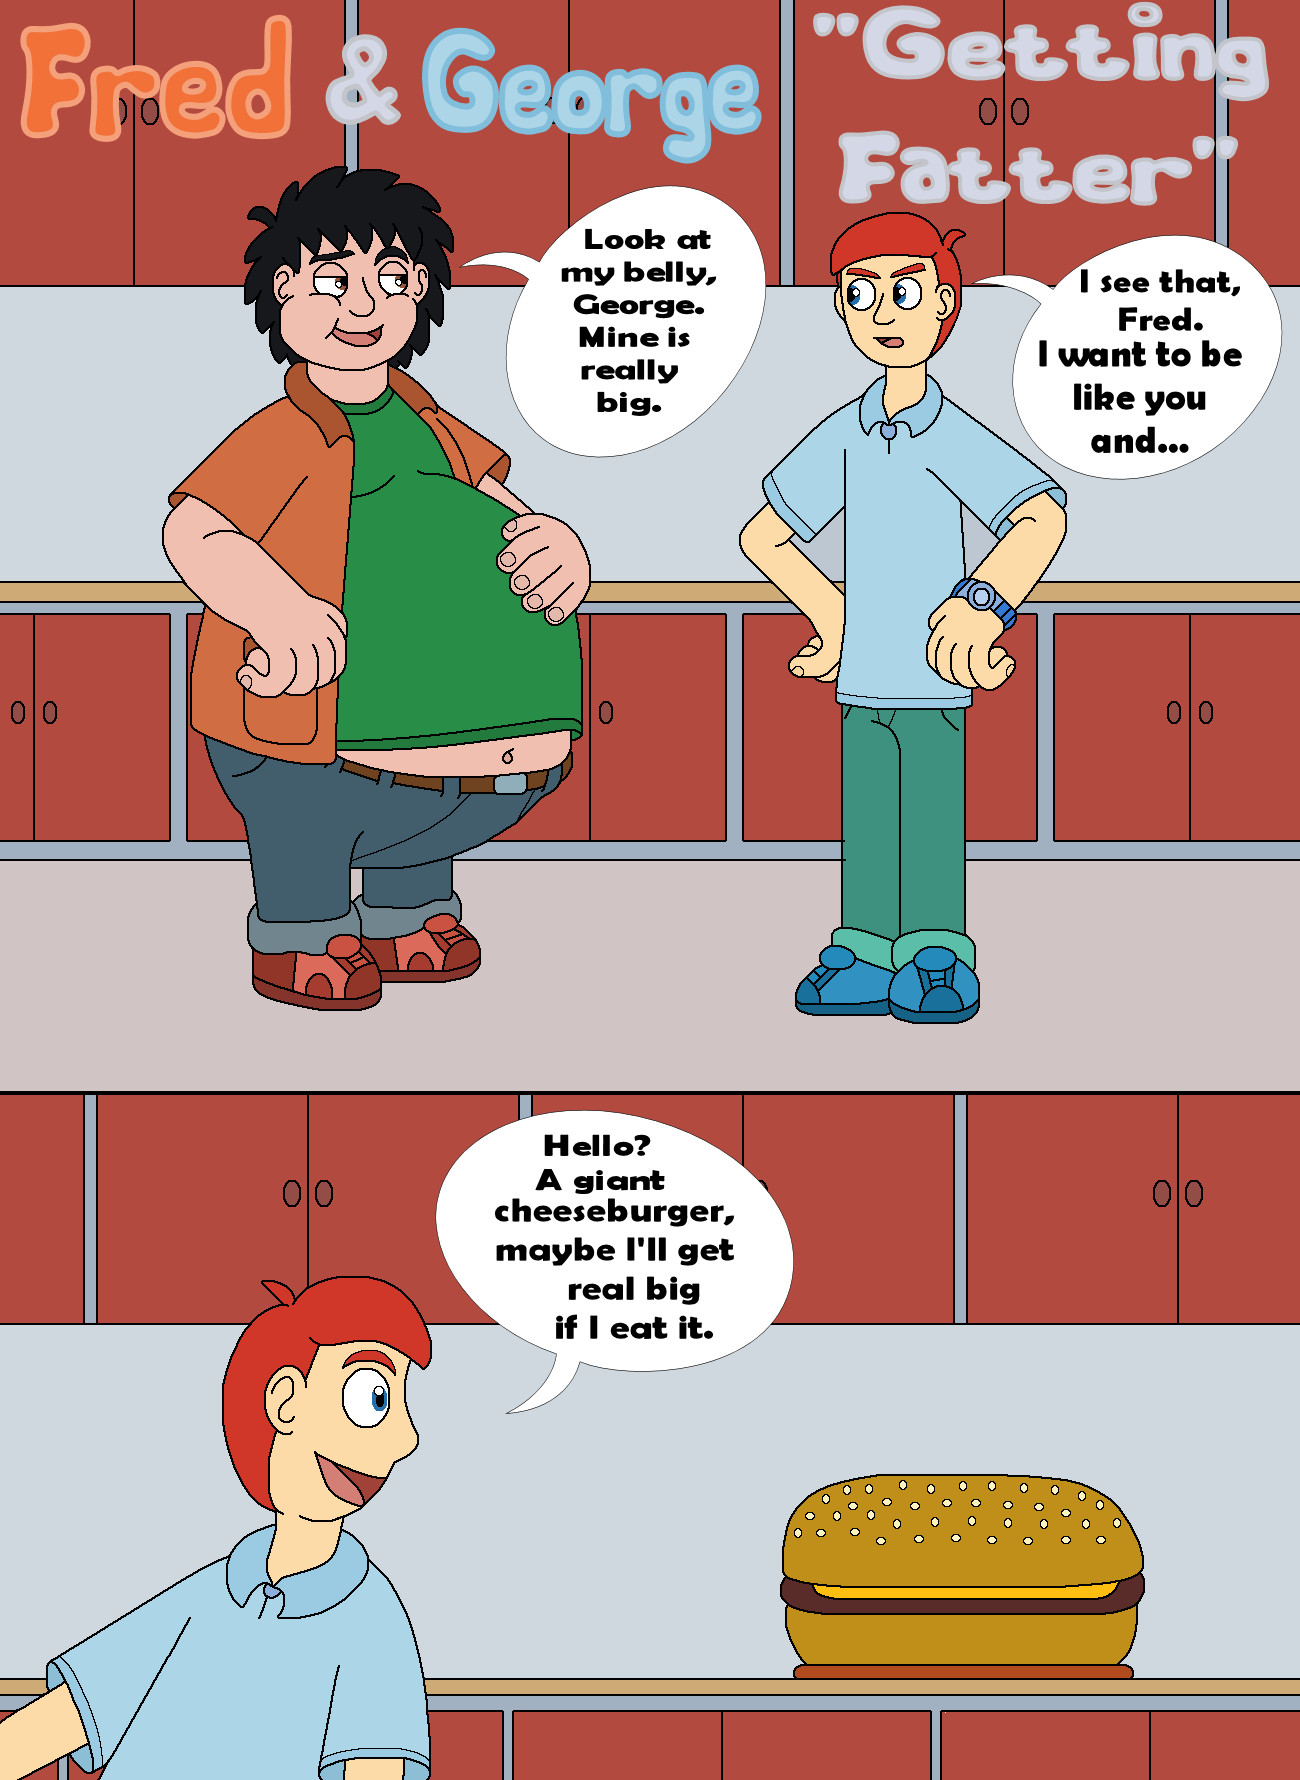 Fred and George Getting Fatter 01 by MCsaurus on DeviantA